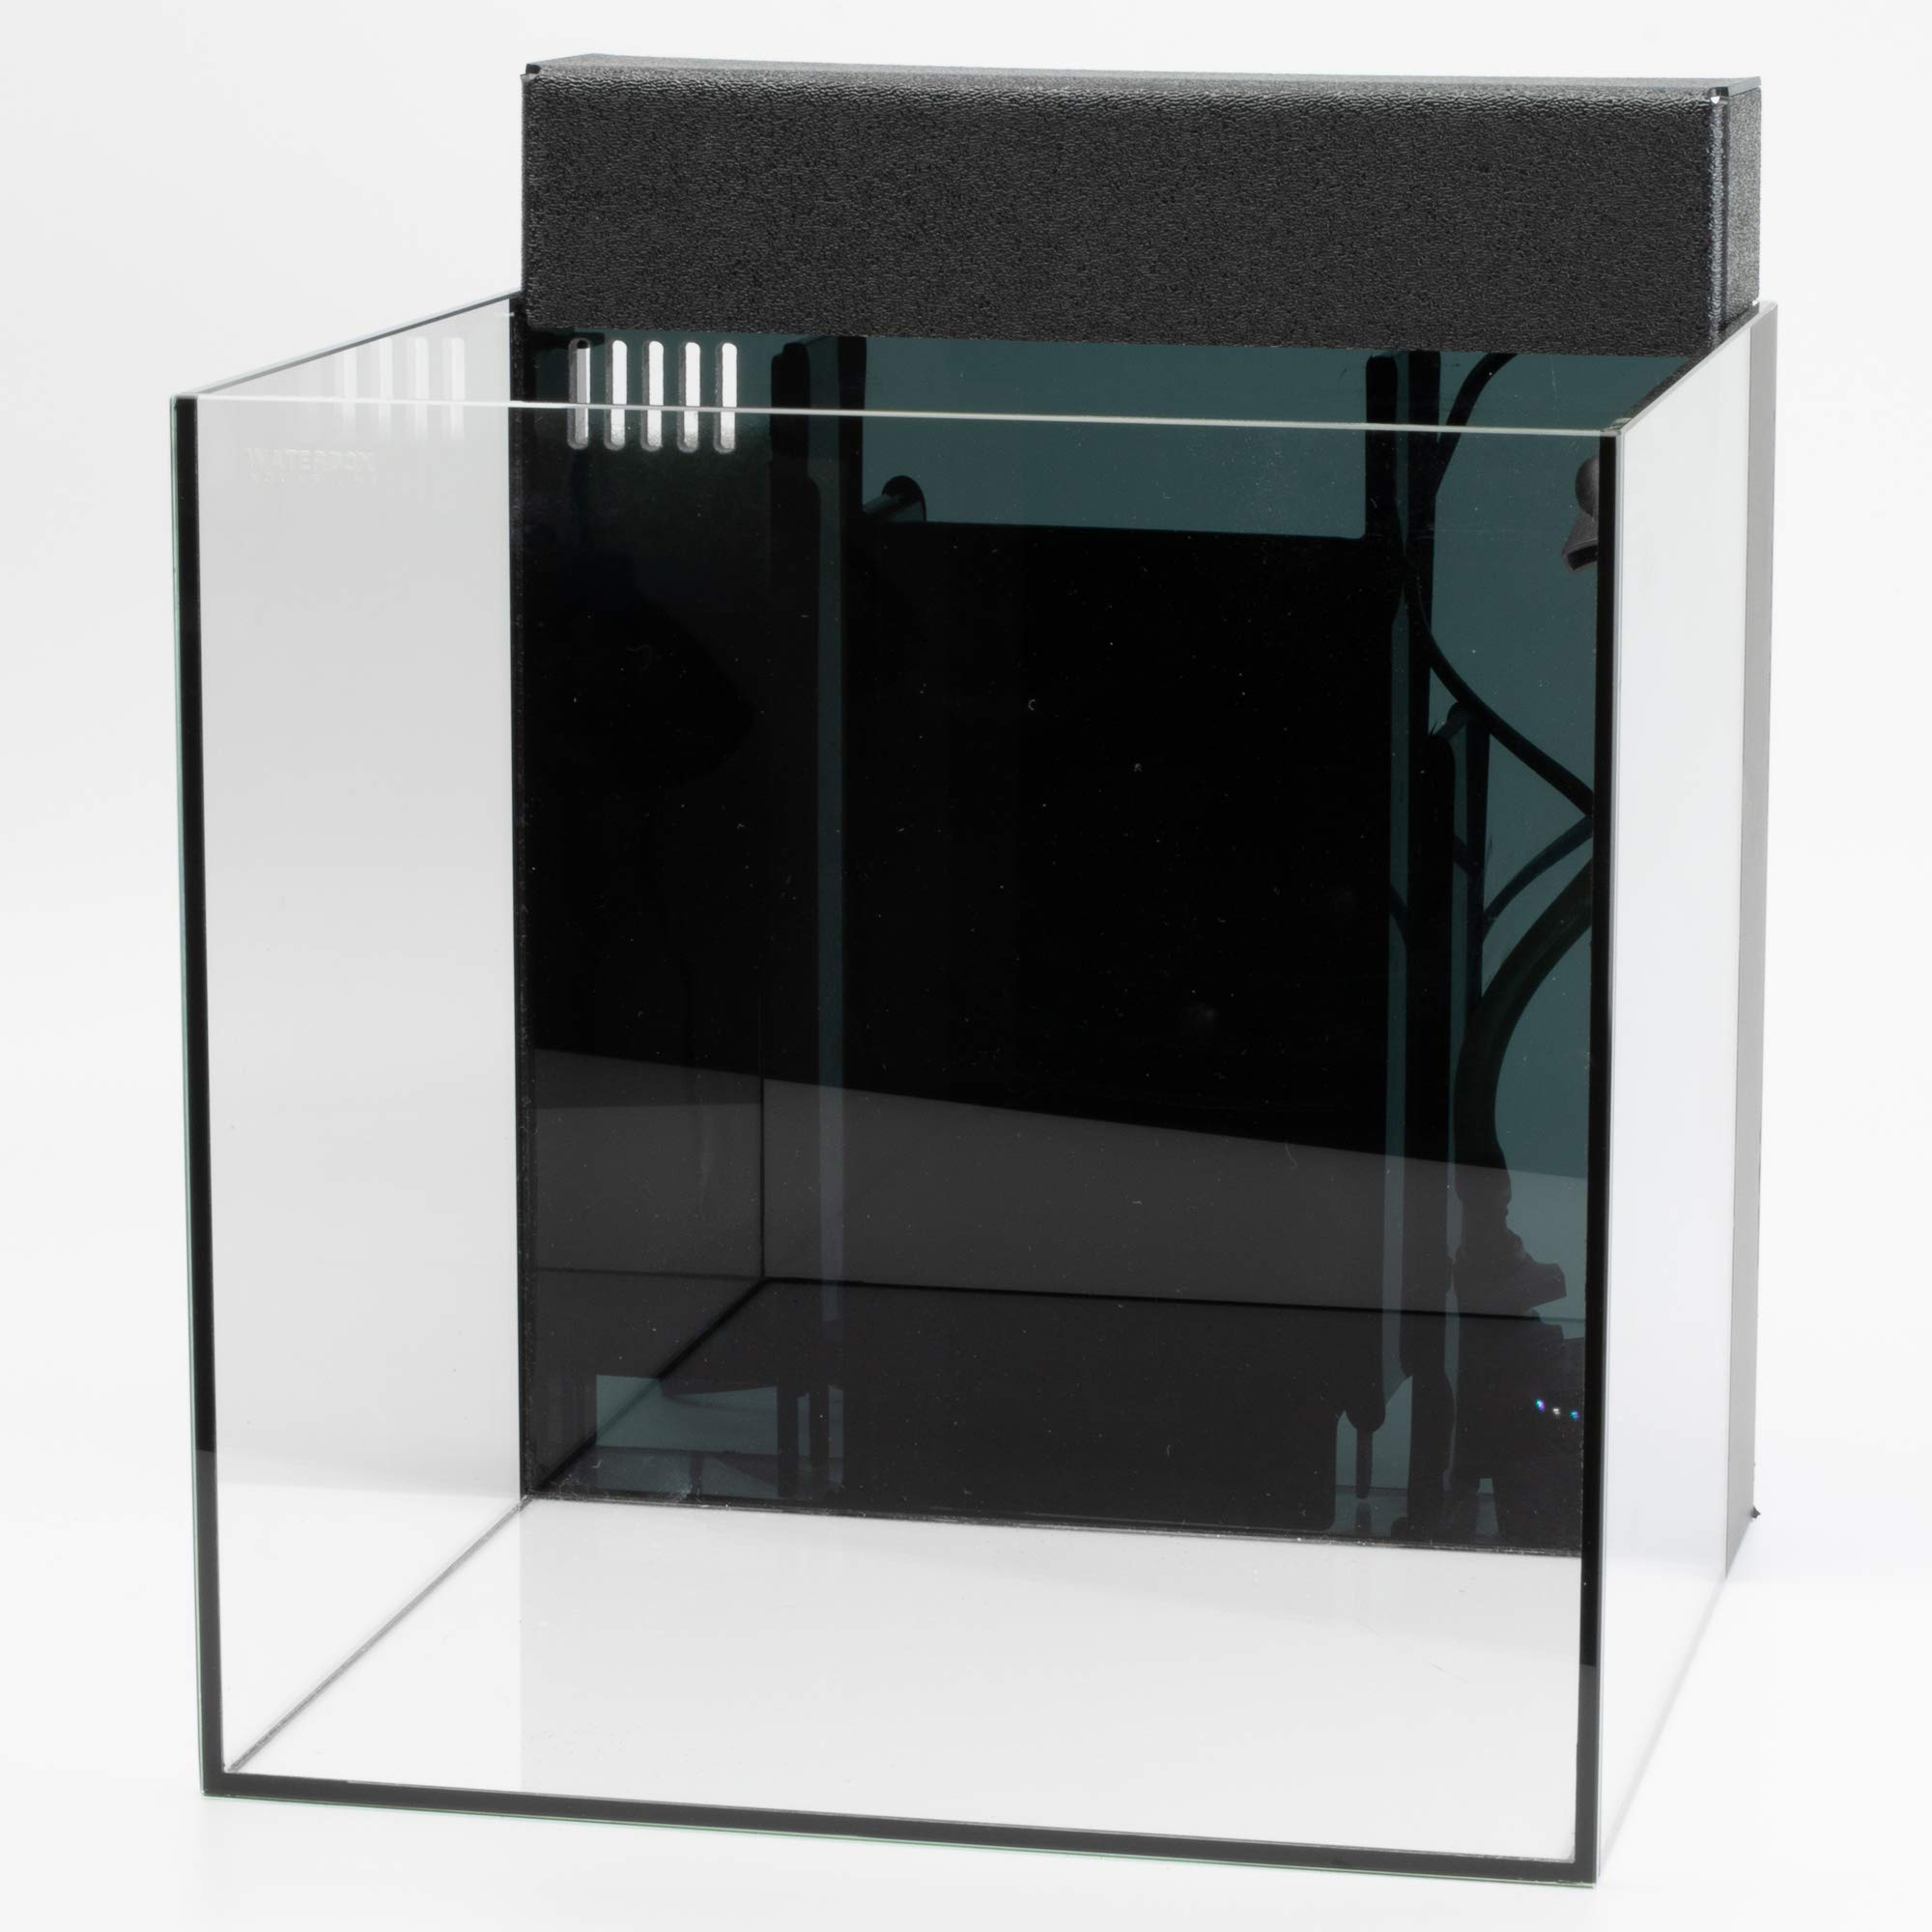 inTank Filtration Cover for Waterbox Cube 7